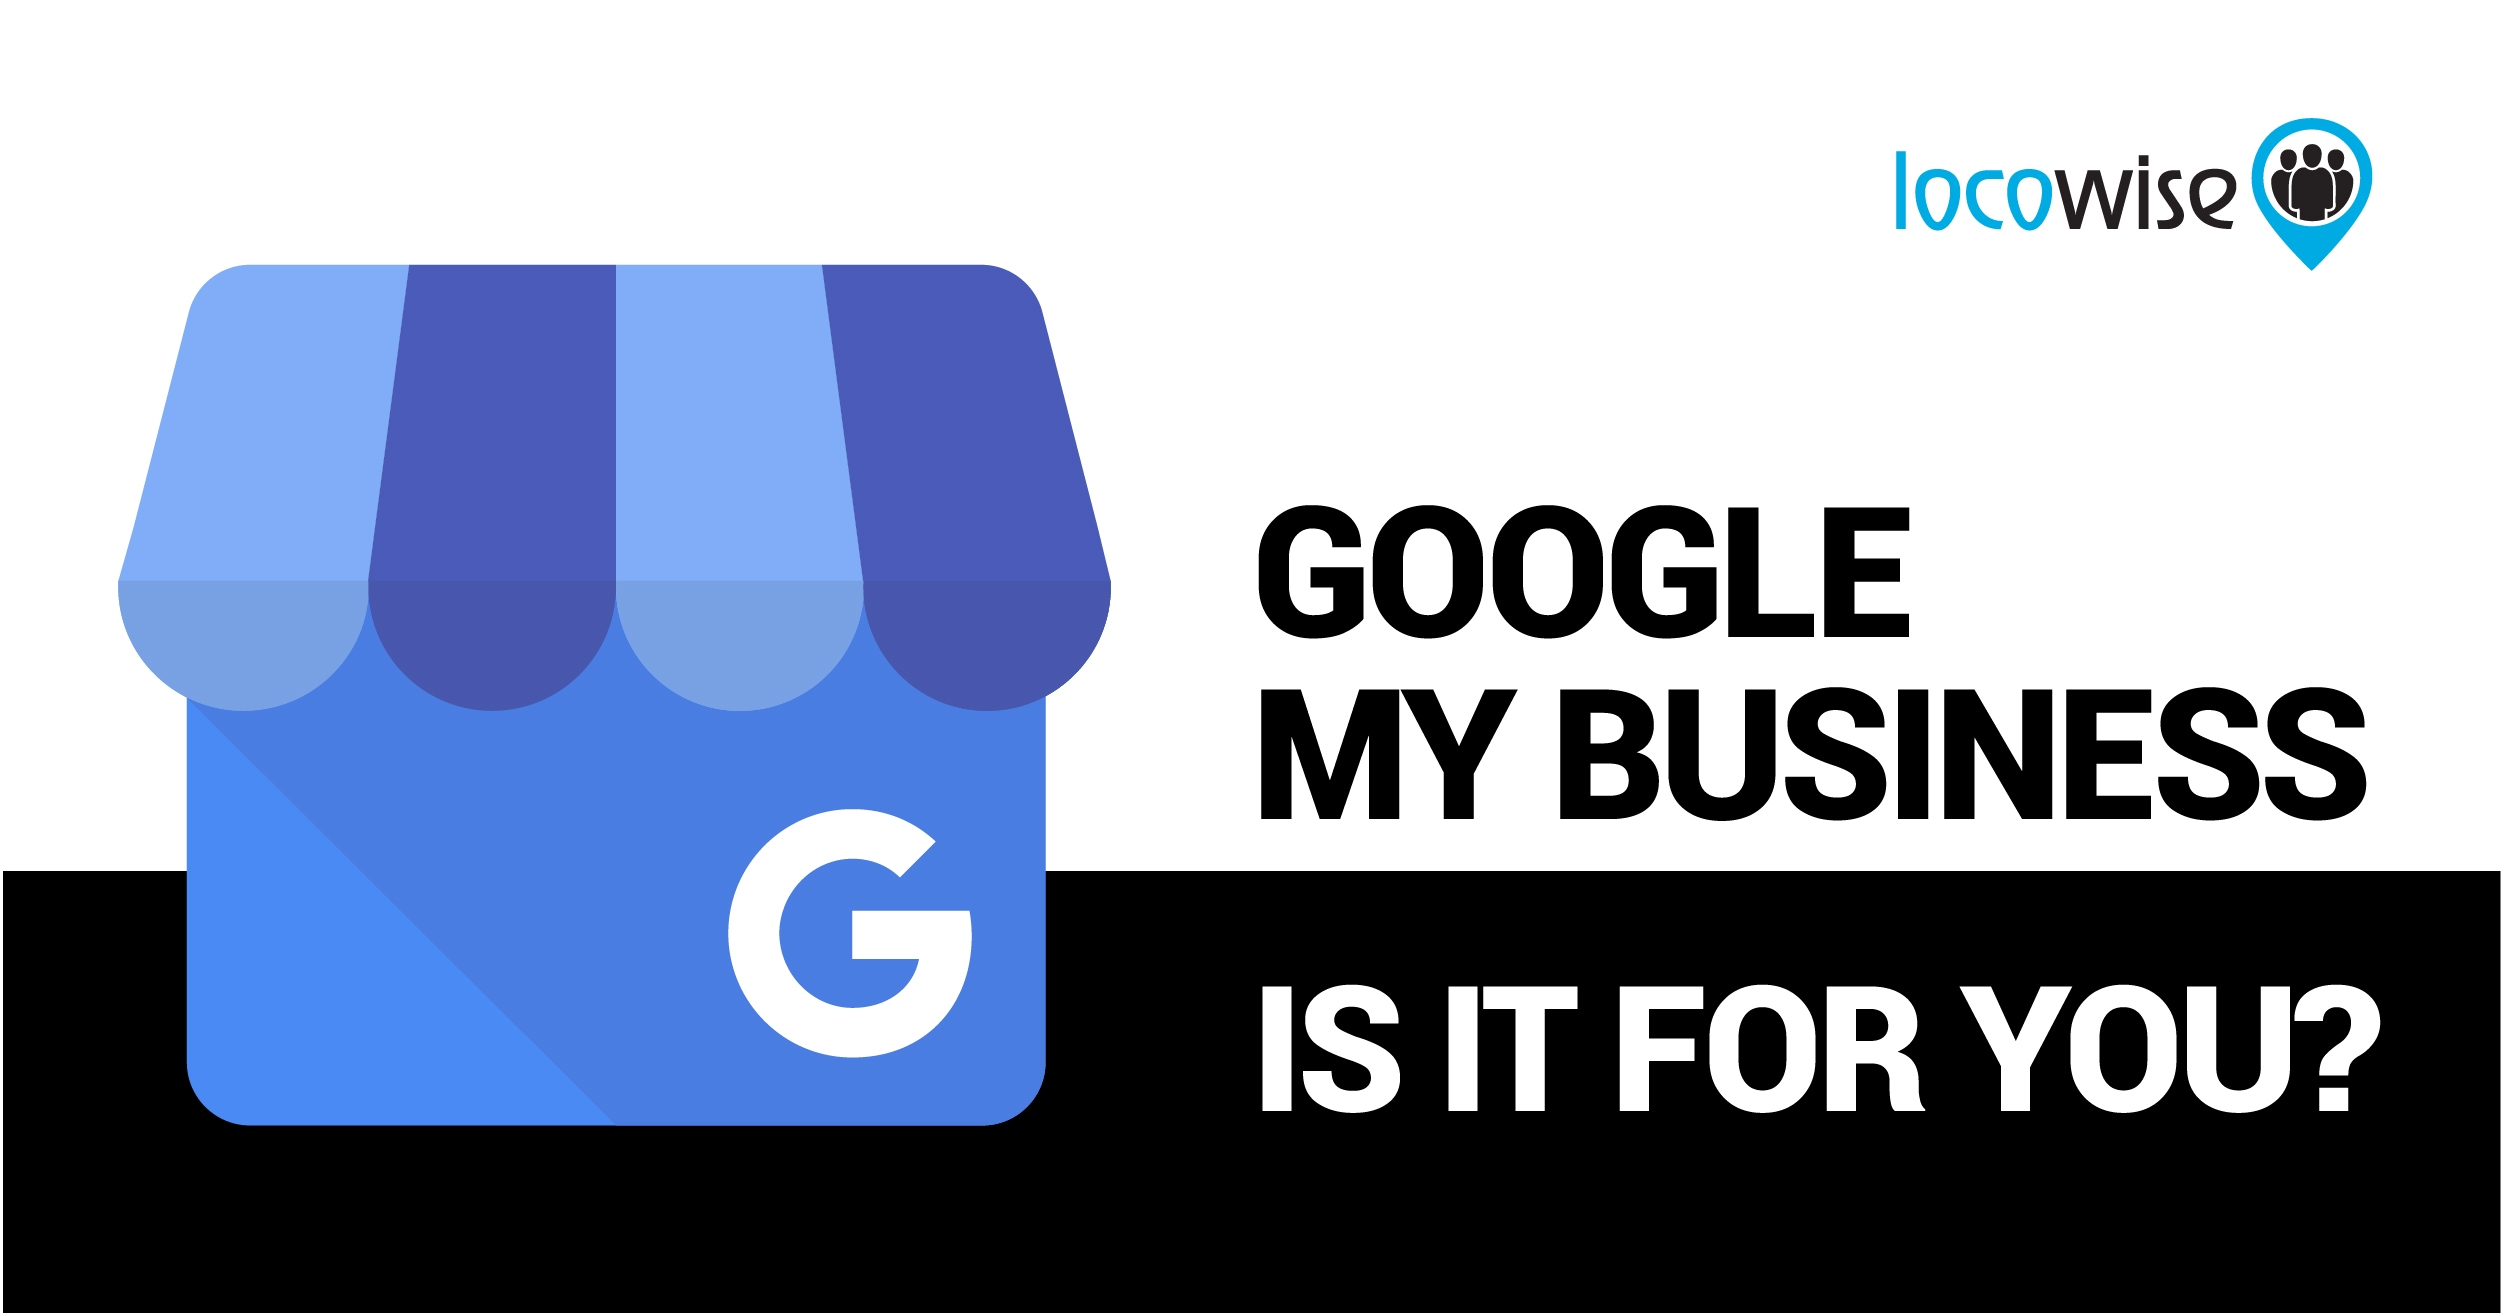 Google My Business: Do You Use It? Should You?